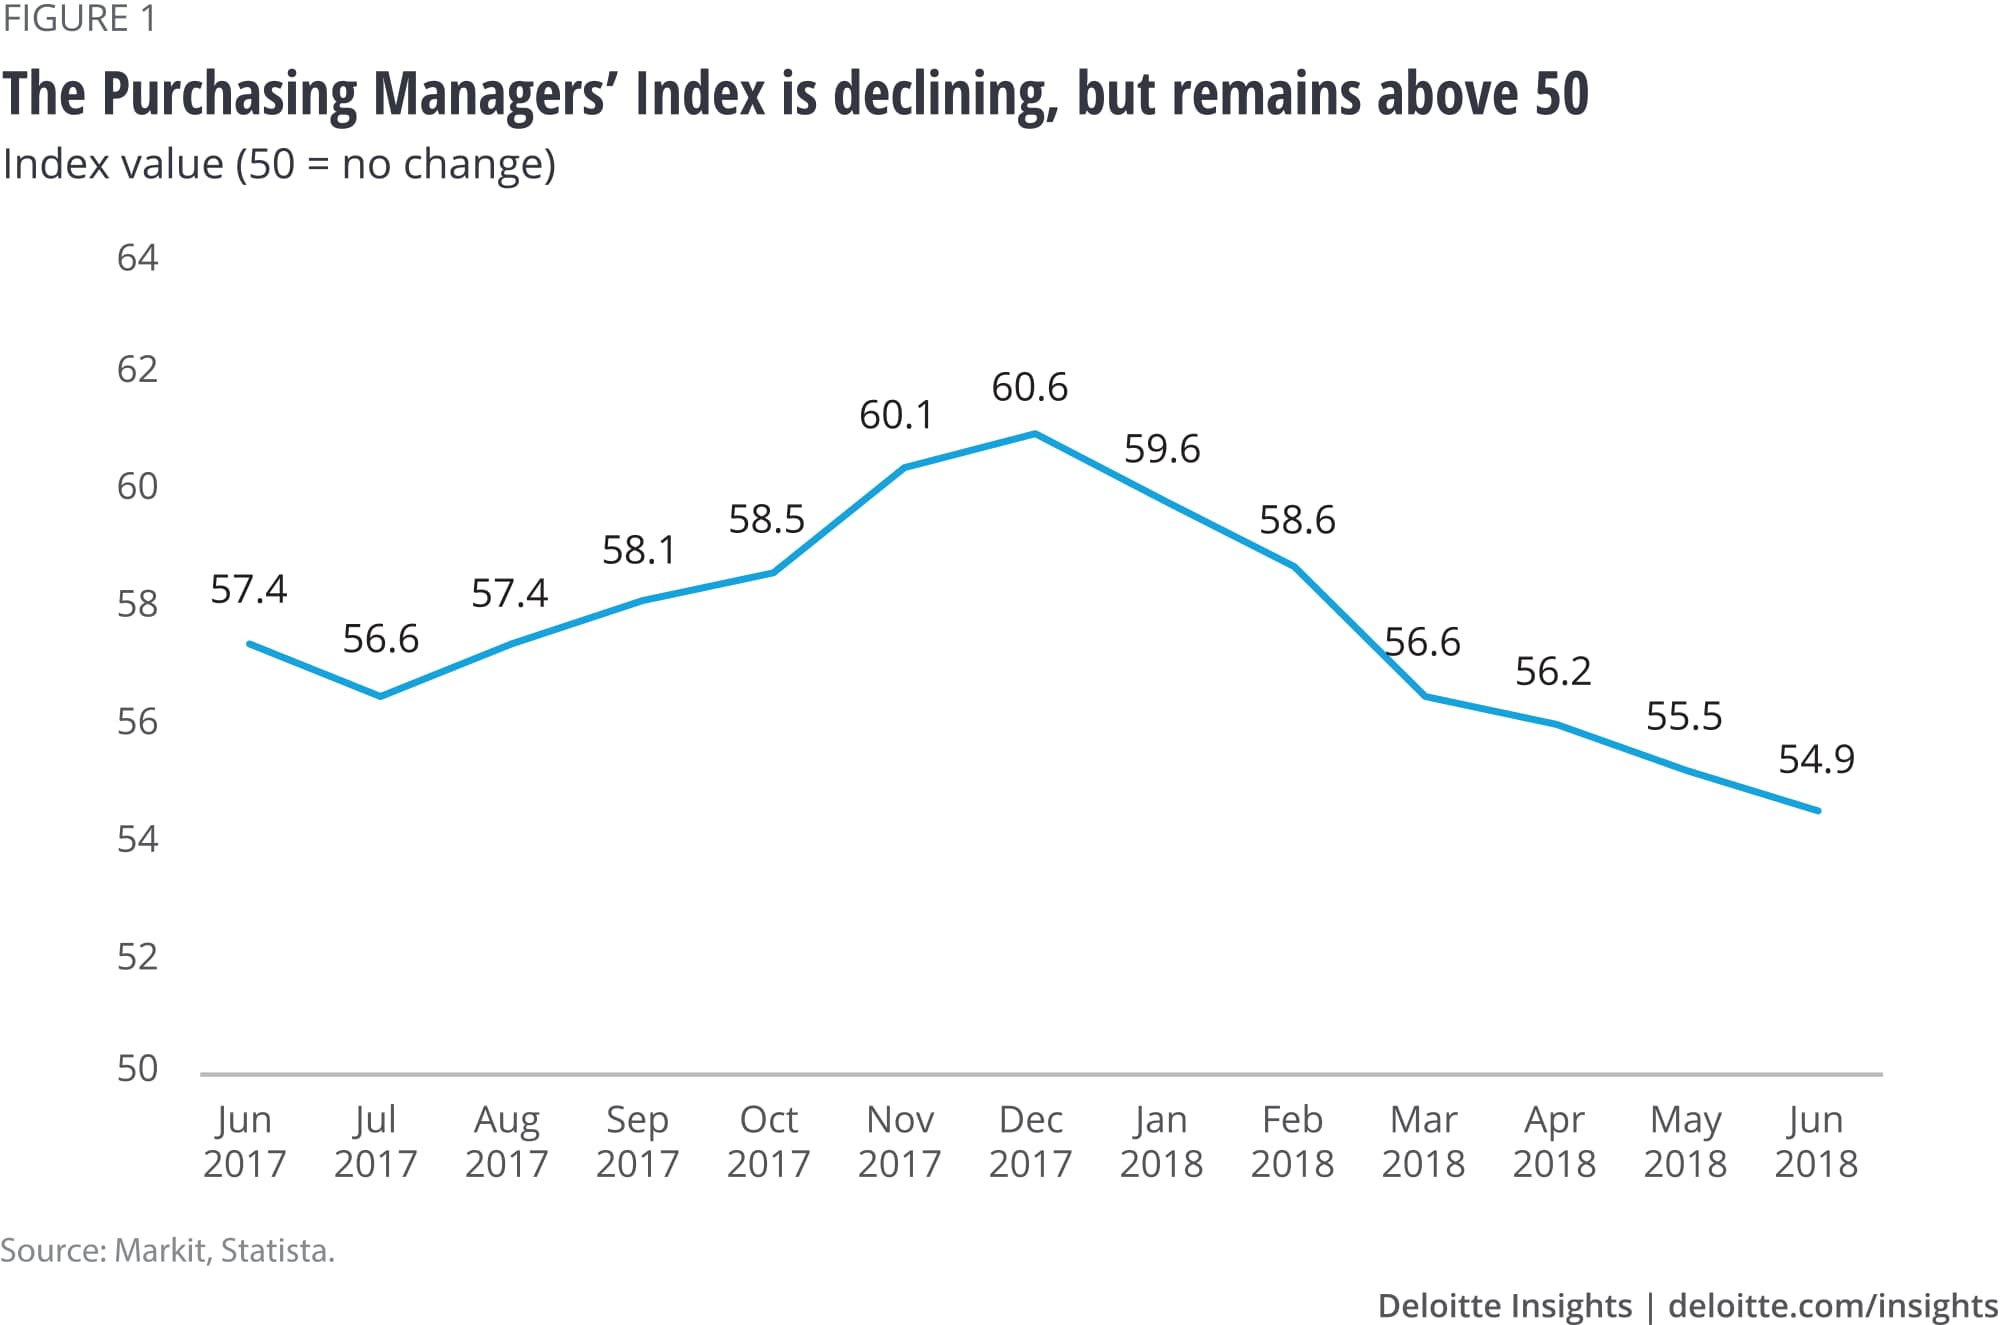 The Purchasing Managers' Index is declining, but remains above 50